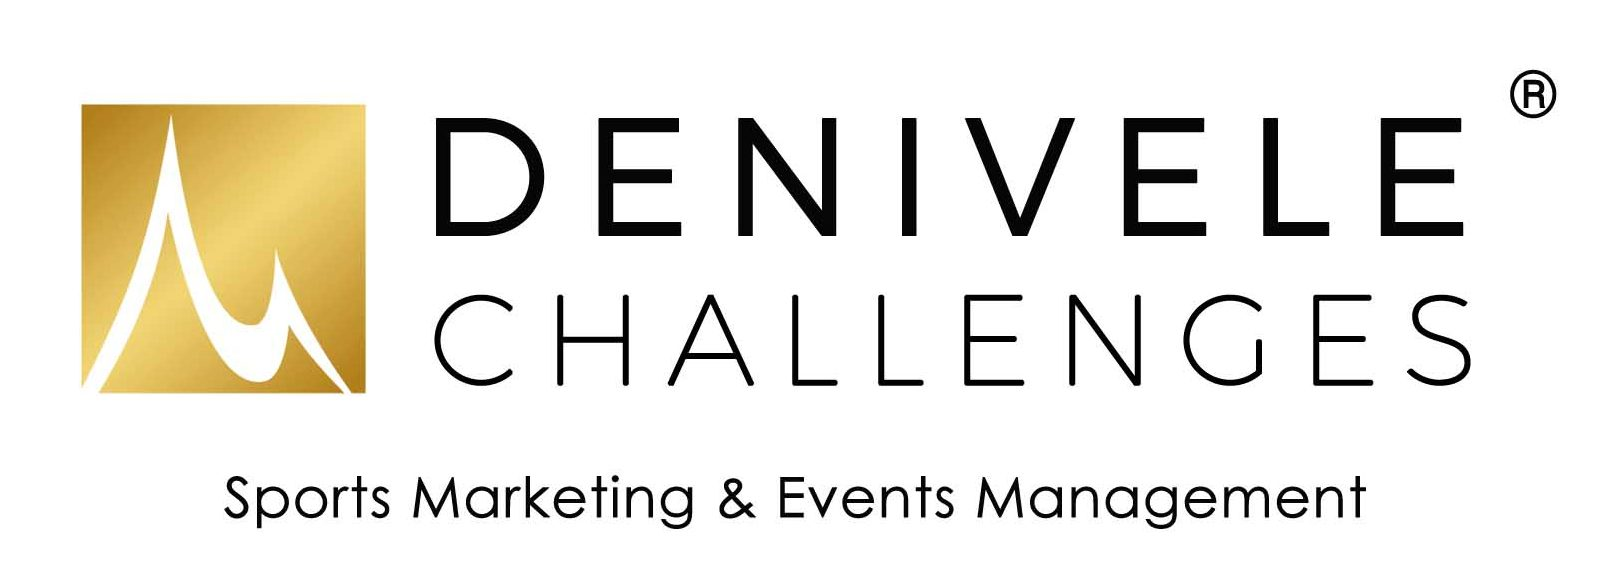 Denivele-challenges-LOGO-2